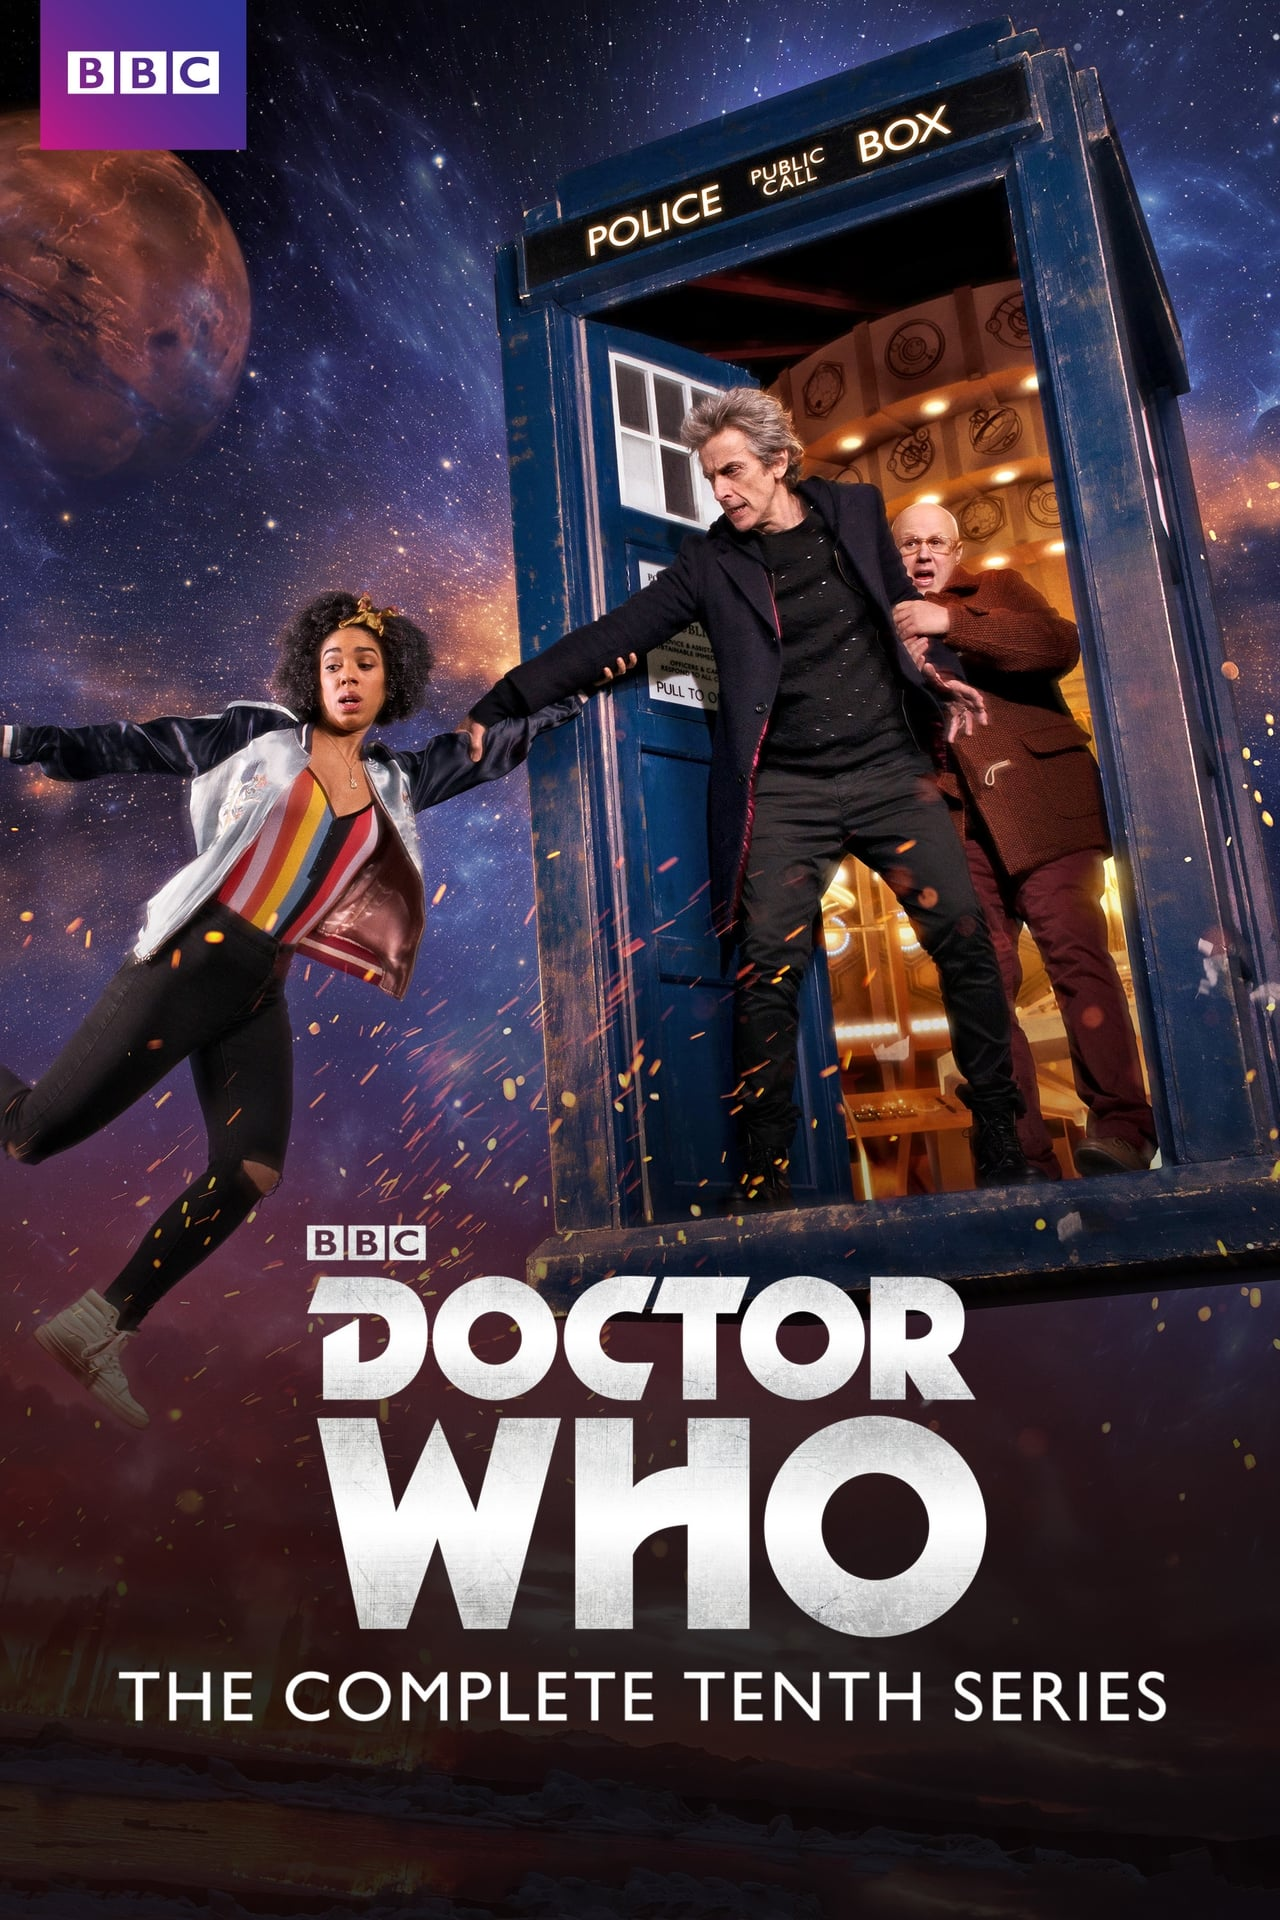 Putlocker Doctor Who Season 10 (2017)